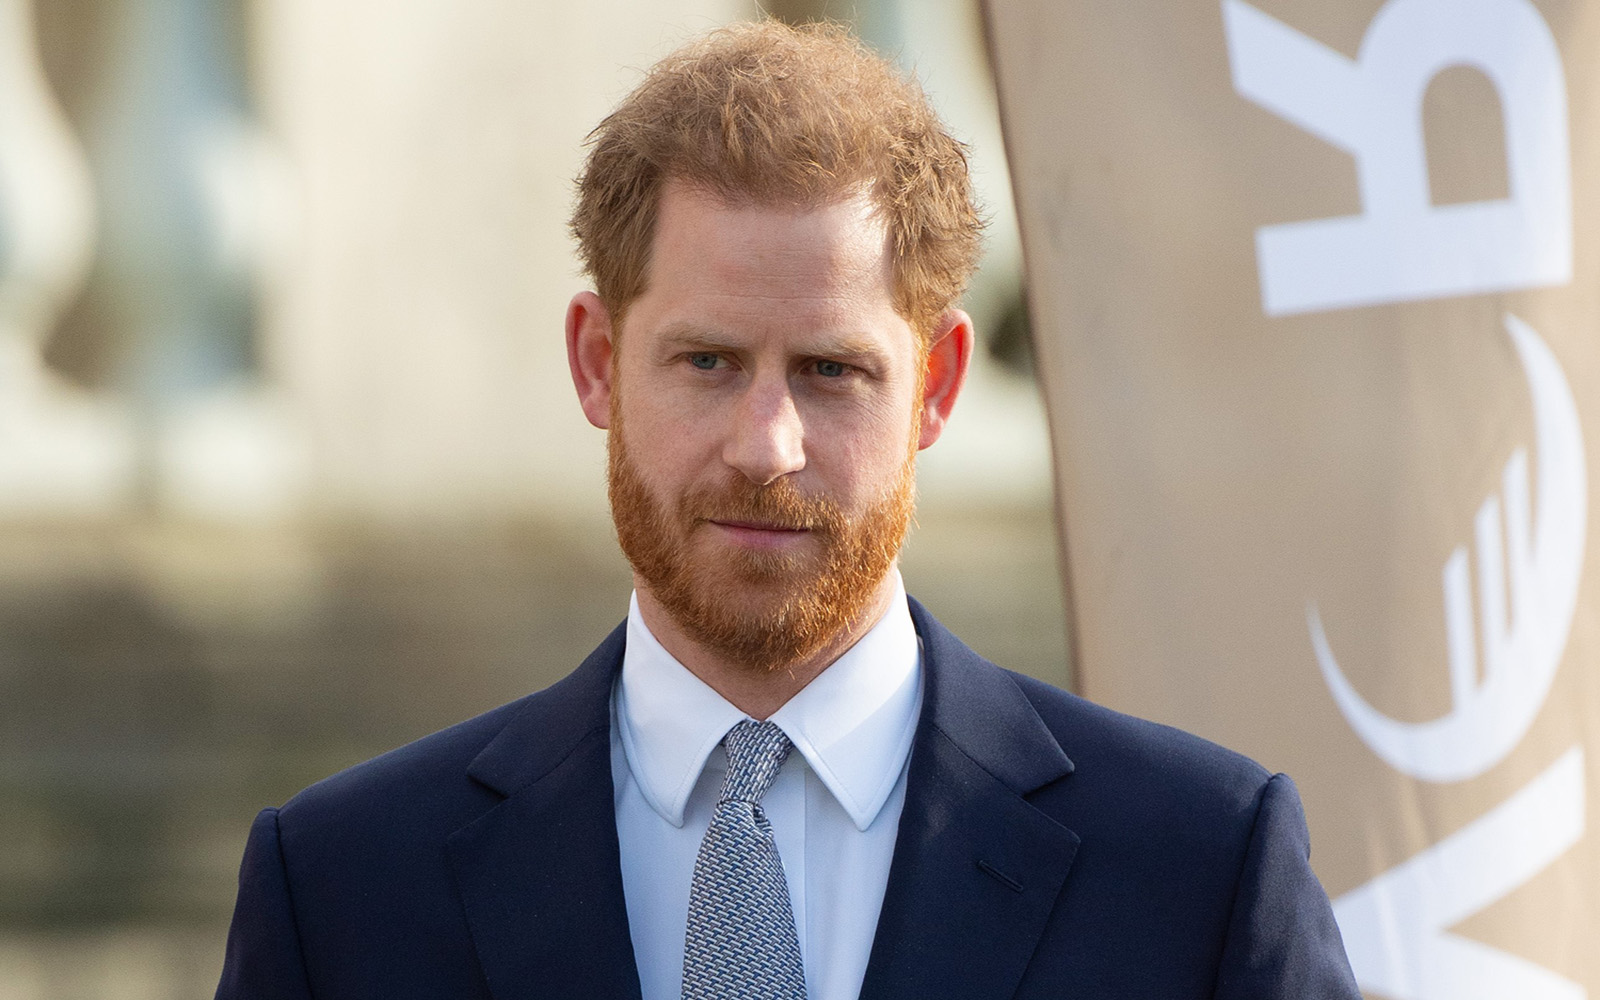 Prince Harry stars in 75th anniversary episode of Thomas the Tank Engine